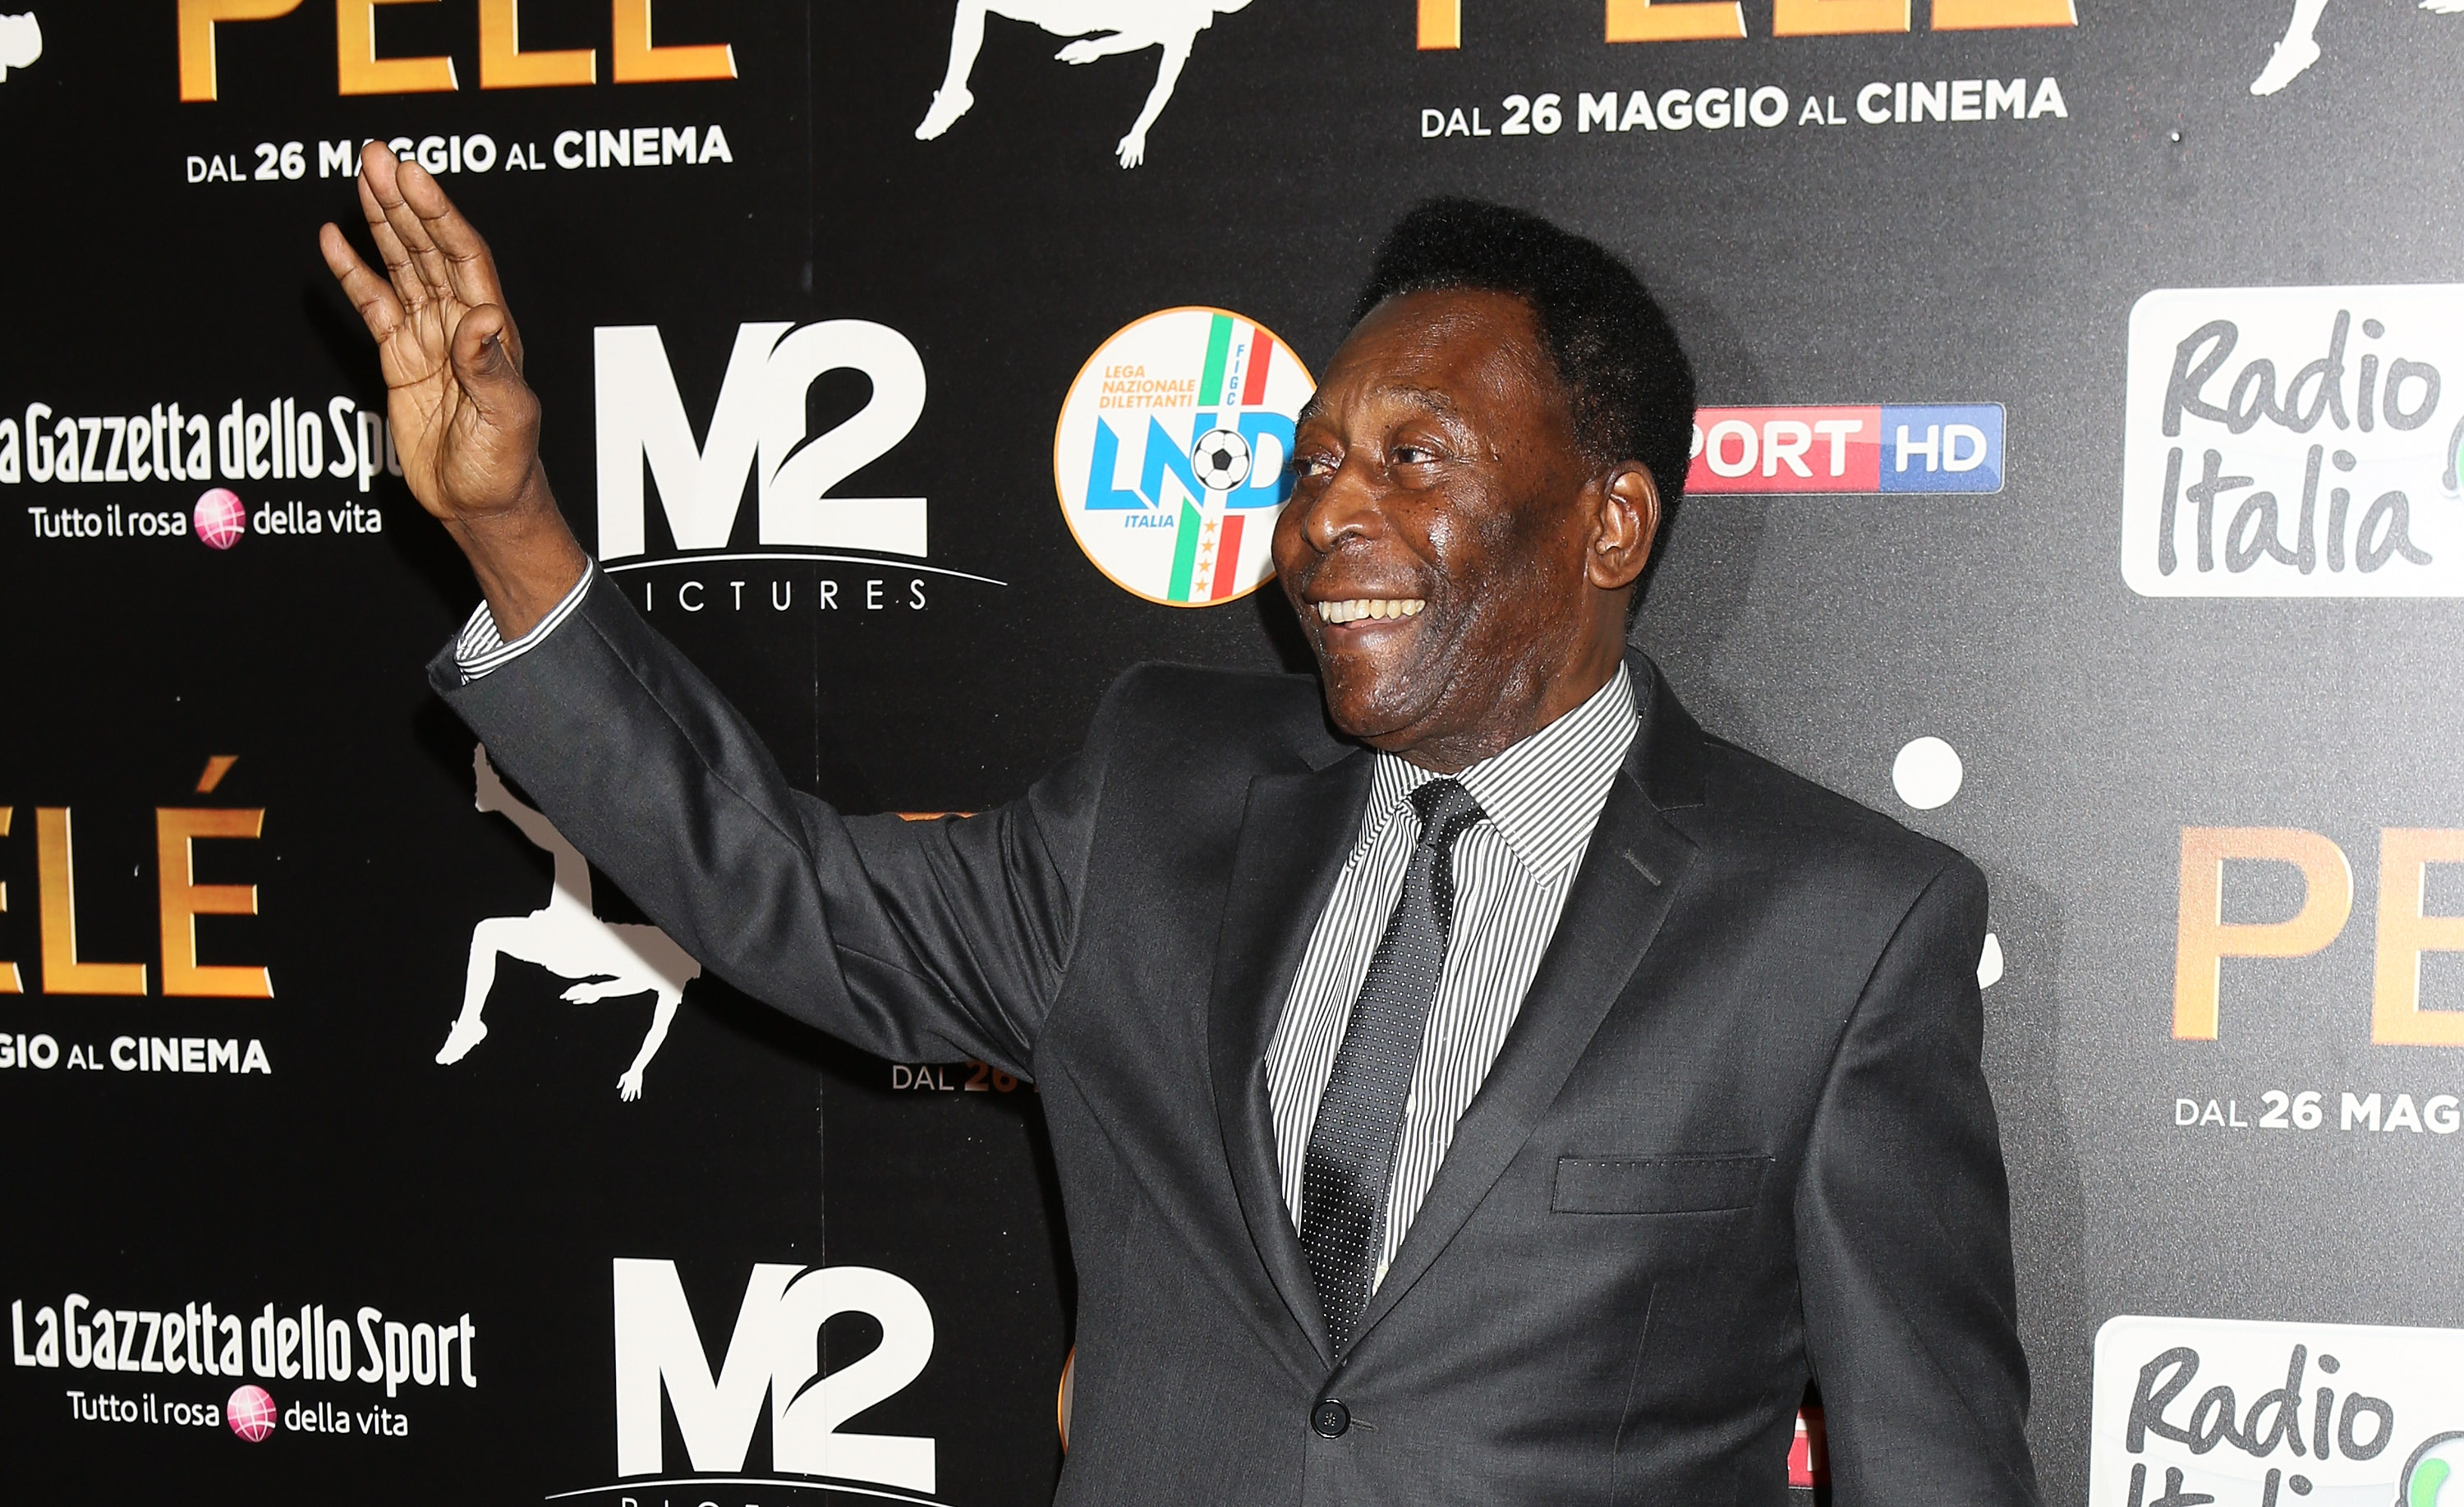 Pele ends the Cristiano Ronaldo/Lionel Messi debate